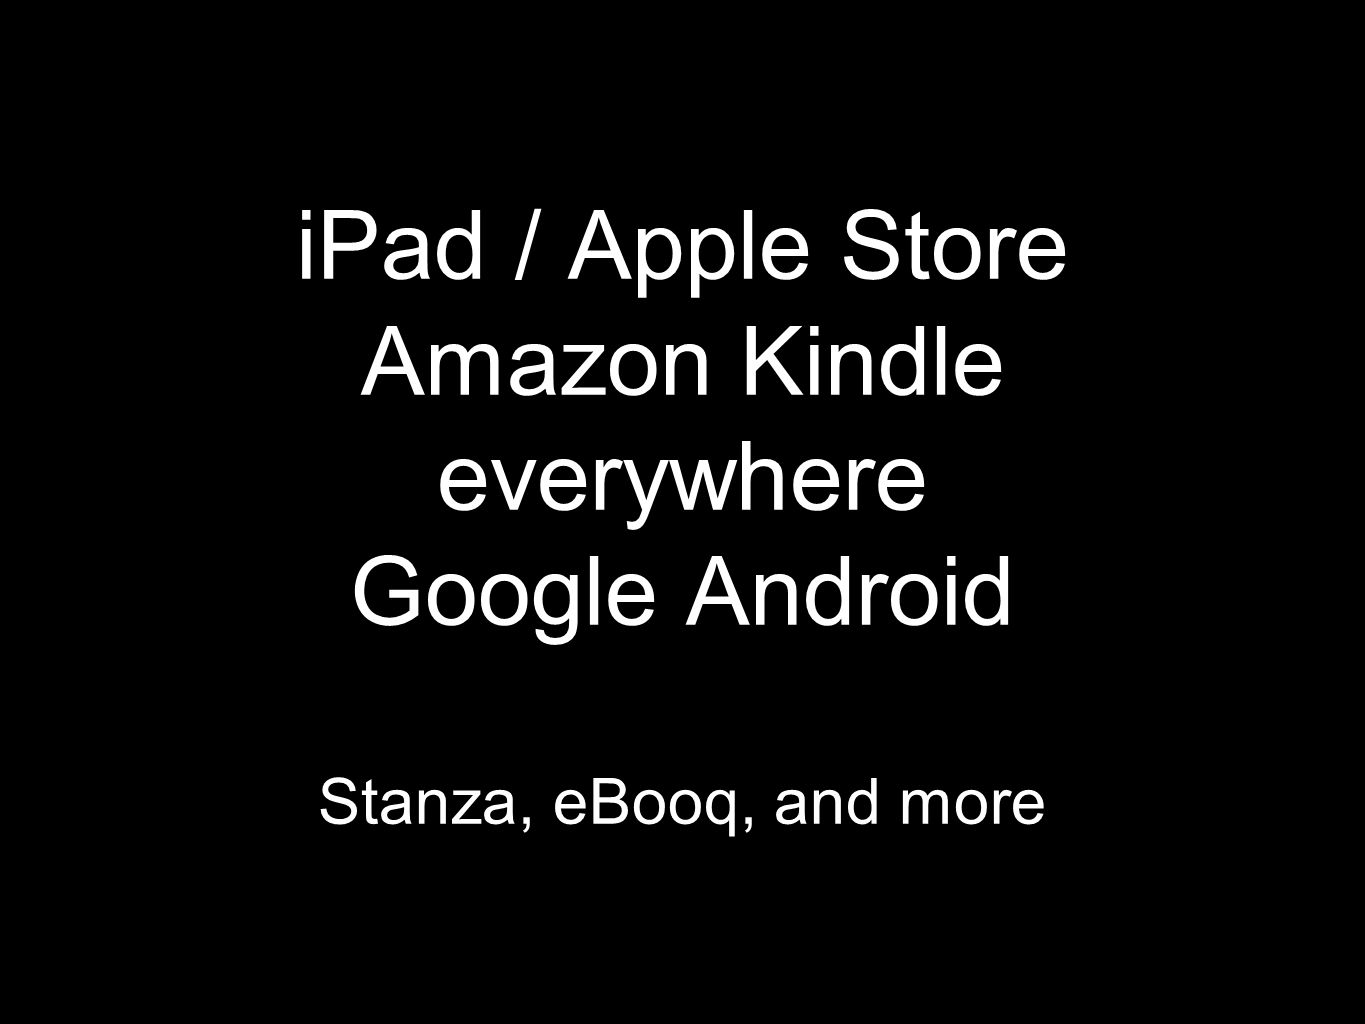 iPad / Apple Store Amazon Kindle everywhere Google Android Stanza, eBooq, and more